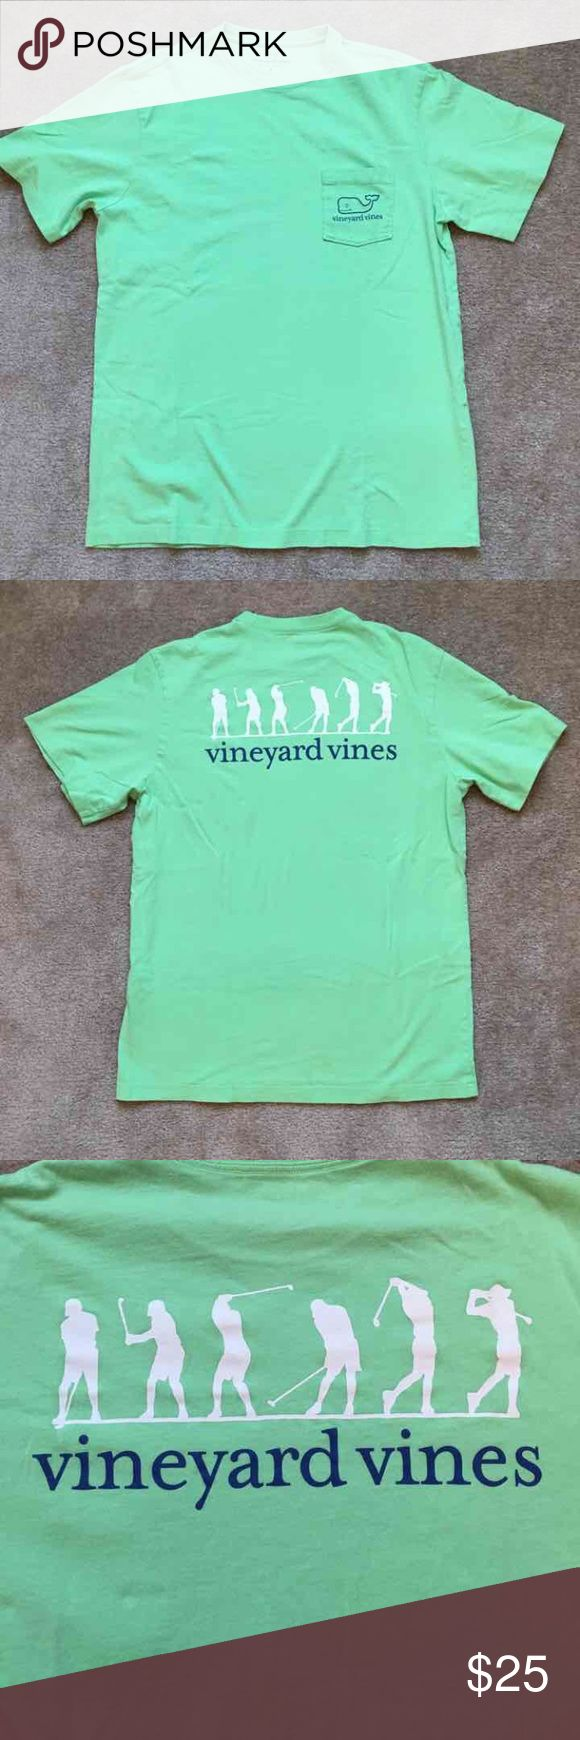 Vineyard vines tshirt This is a men's size small with golf graphics on the back. Vineyard Vines Tops Tees - Short Sleeve